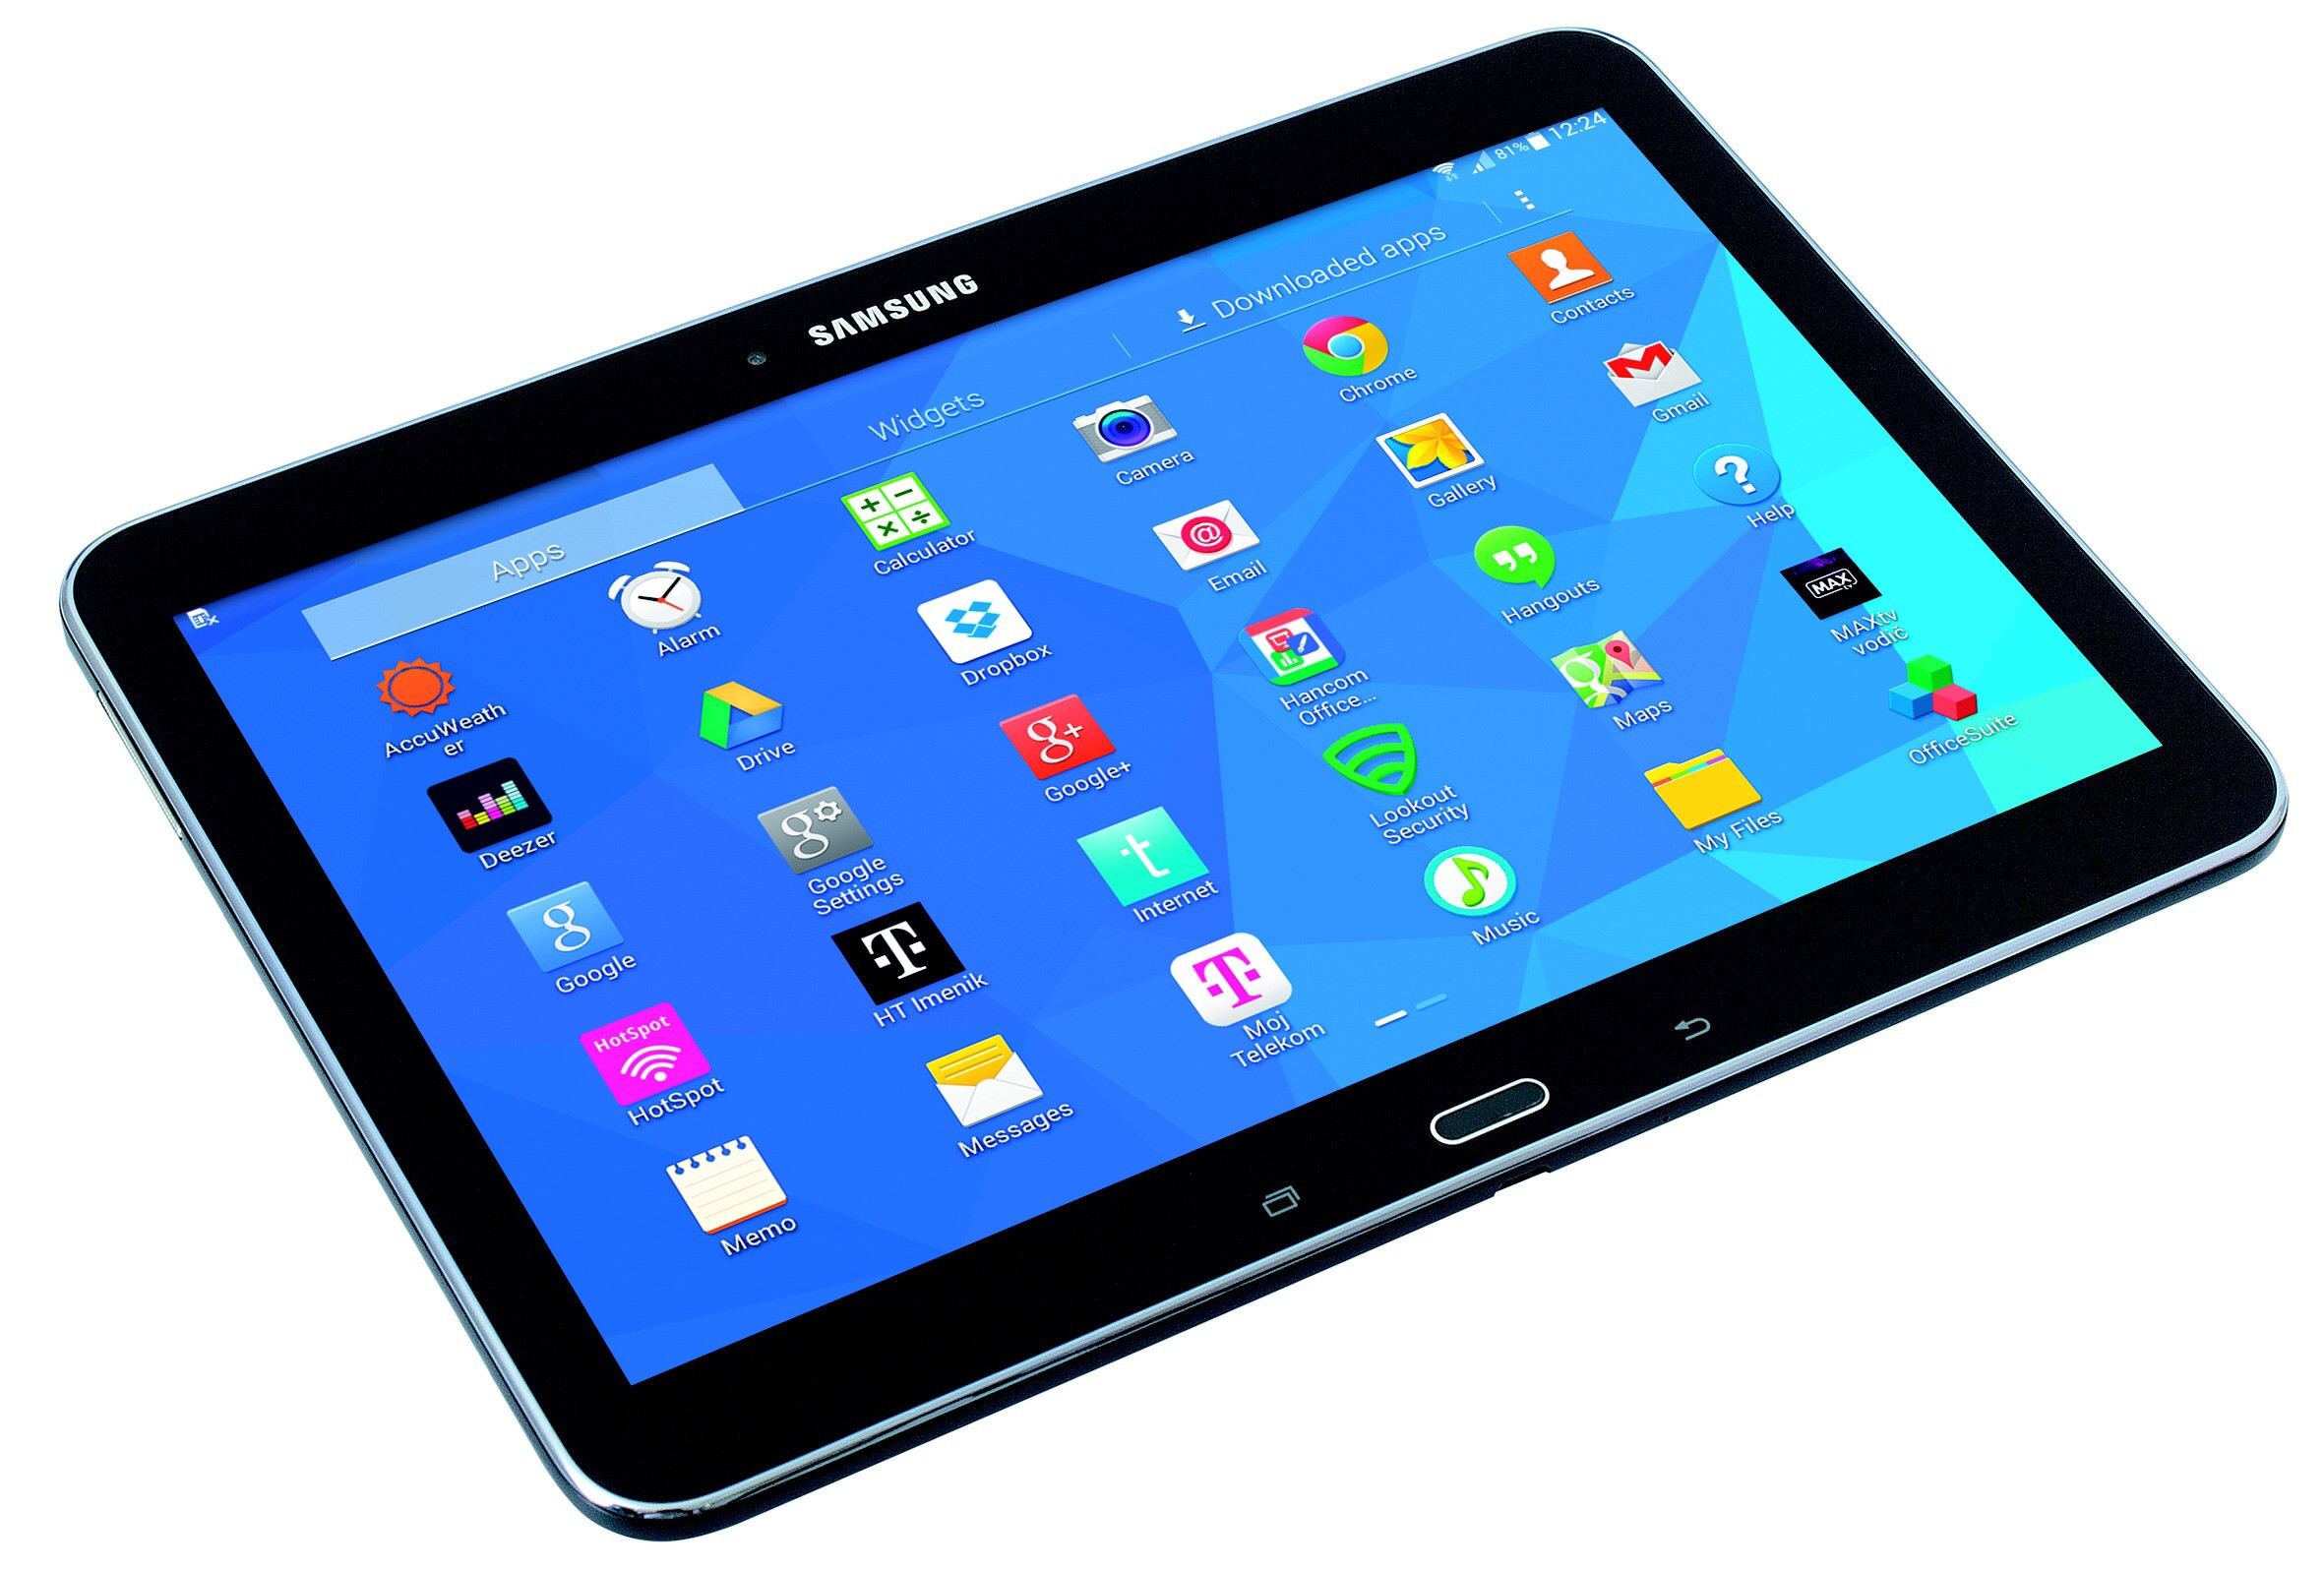 Samsung Galaxy Tab A 10.1 Mejor Samsung Galaxy Tab 4 10 1 Price Bangladesh Of Samsung Galaxy Tab A 10.1 Innovador How to Unroot the Samsung Galaxy Tab 2 10 1 at&t theunlockr